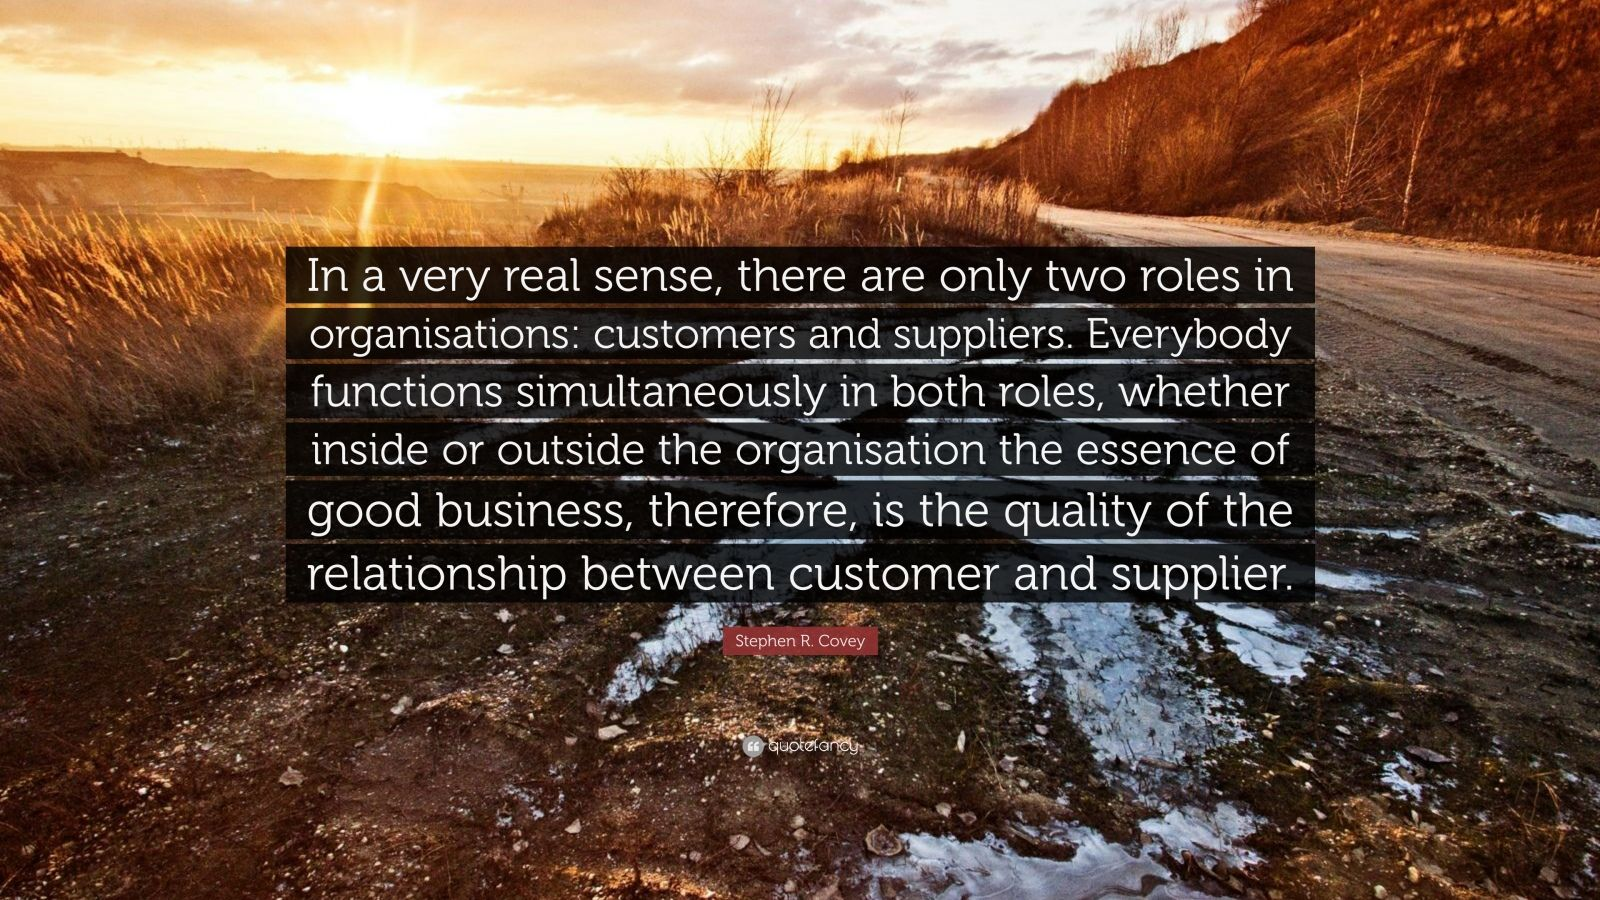 "Stephen R. Covey Quote: ""In a very real sense, there are only two roles in organisations: customers and suppliers. Everybody functions simultaneously in both roles, whether inside or outside the organisation the essence of good business, therefore, is the quality of the relationship between customer and supplier."""